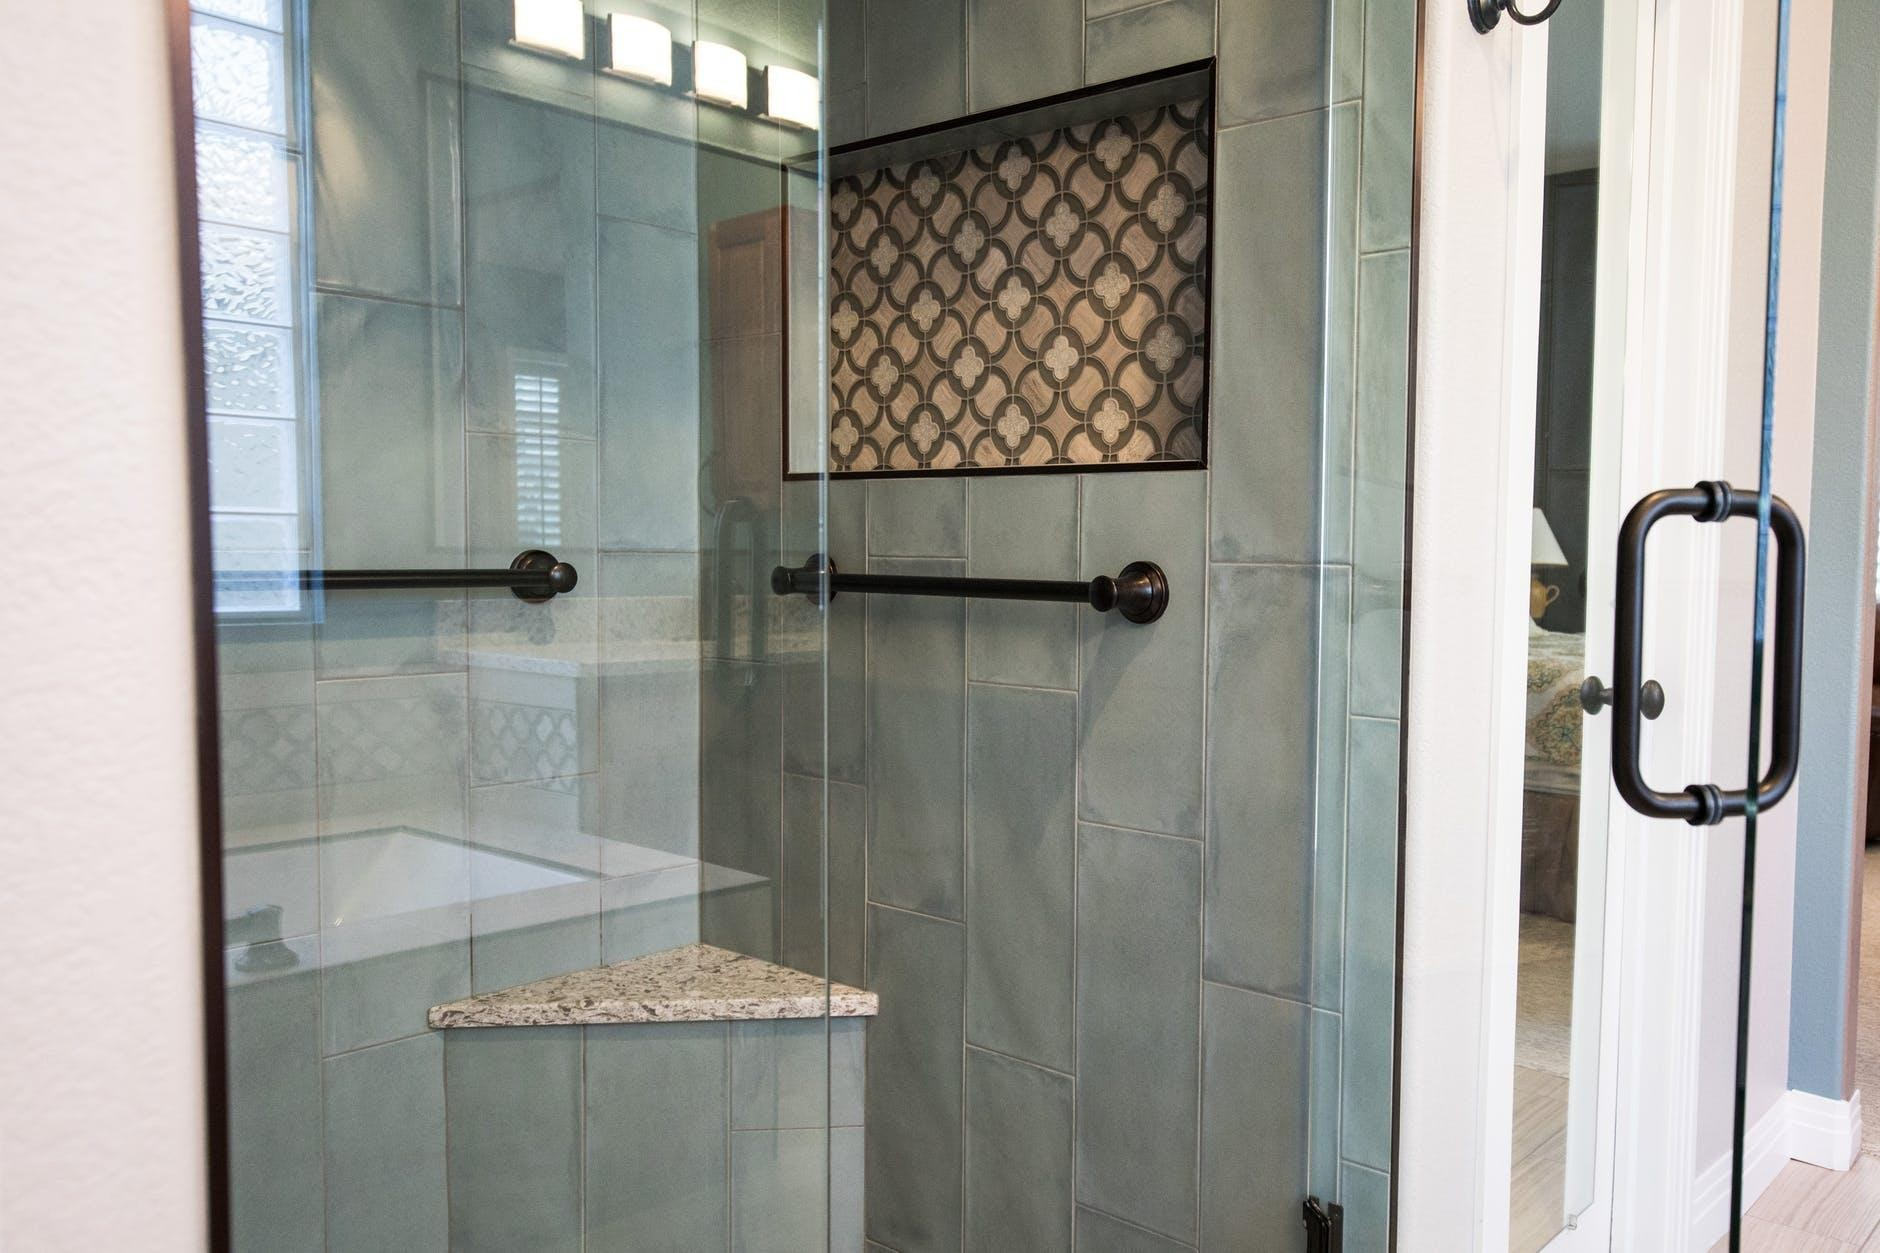 Glass Shower Door at home